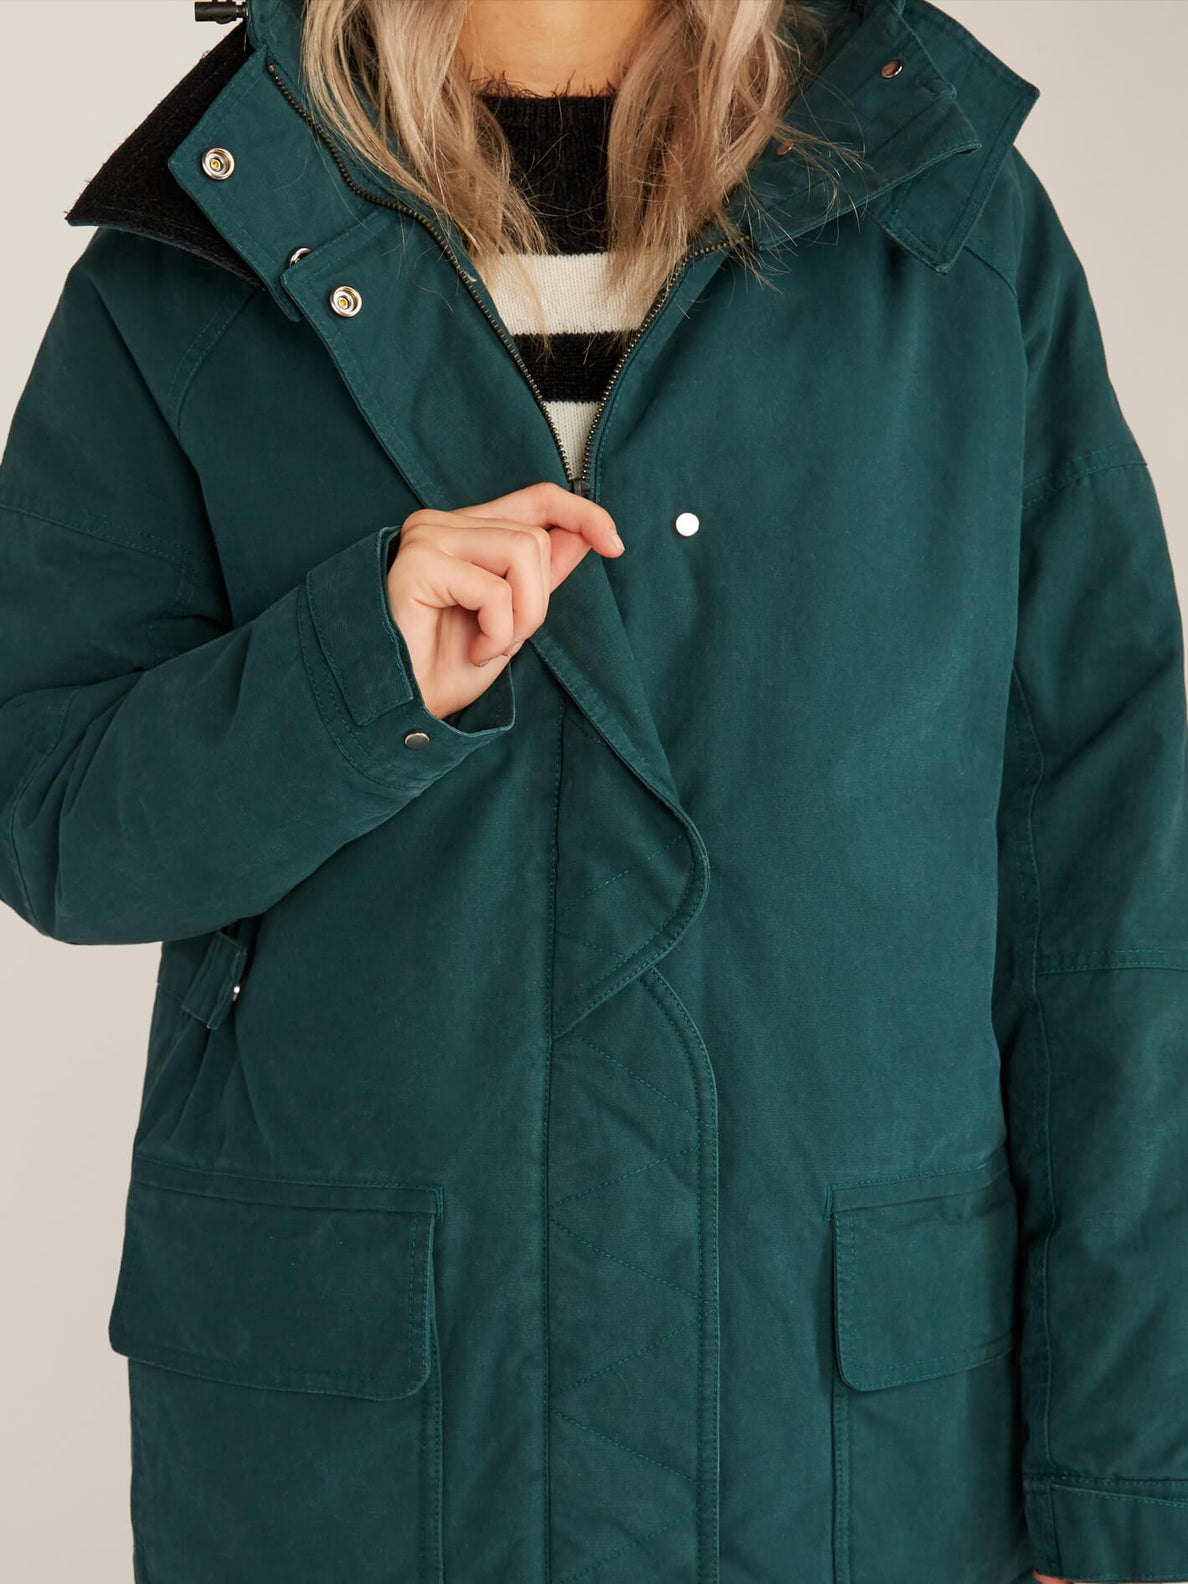 Volcover Parka In Evergreen, Third Alternate View